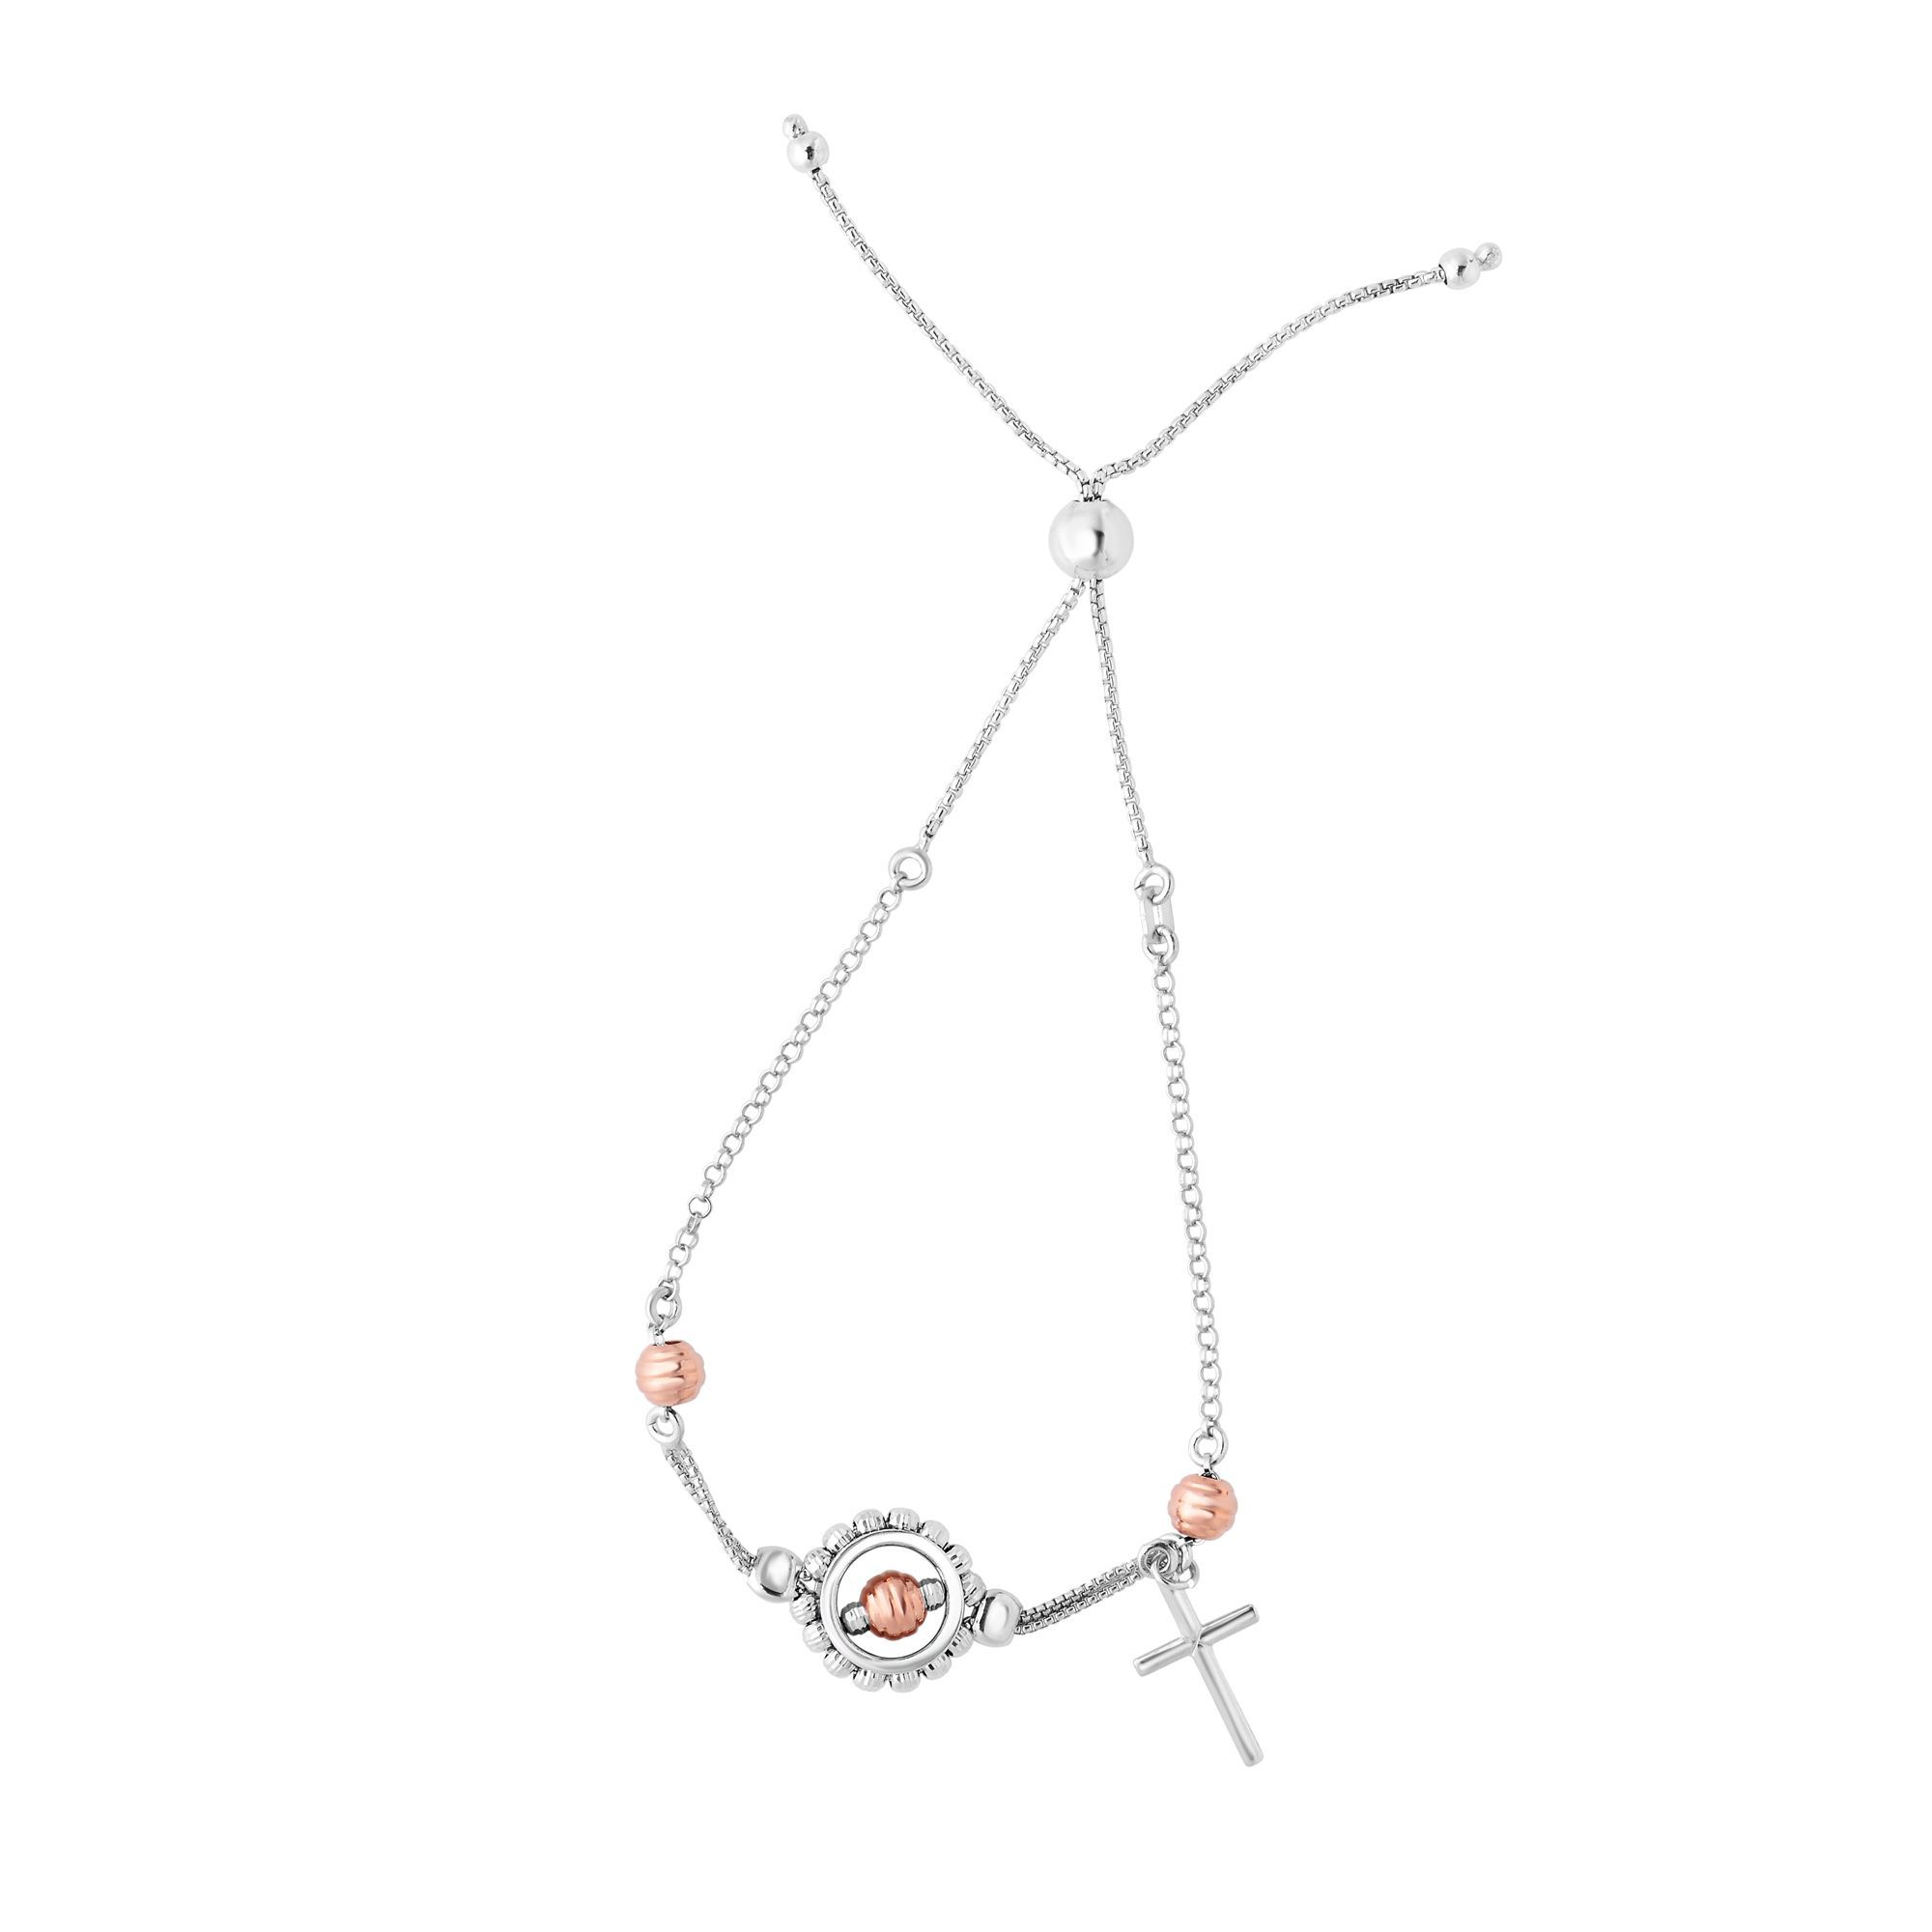 Sterling Silver Rose Color Beads With Cross Charm Adjustable Bolo Friendship Bracelet , 9.25  Designed for today's fast-moving, contemporary woman, the Friendship bracelets are smart, stylish and easy to wear. Meticulously executed in high quality Rhodium plated sterling silver, these iconic bracelets are easily adjusted to fit any wrist. The Adjustable sliding closure allows you to go from 9.25 inches length to as small as allowed by the design.  Each unique style of our Friendship collection looks beautiful worn as one piece alone or stacked with multiple styles for a layered and modern look. The bracelet comes in an elegant jewelry gift box, perfect for any gift giving occasion.